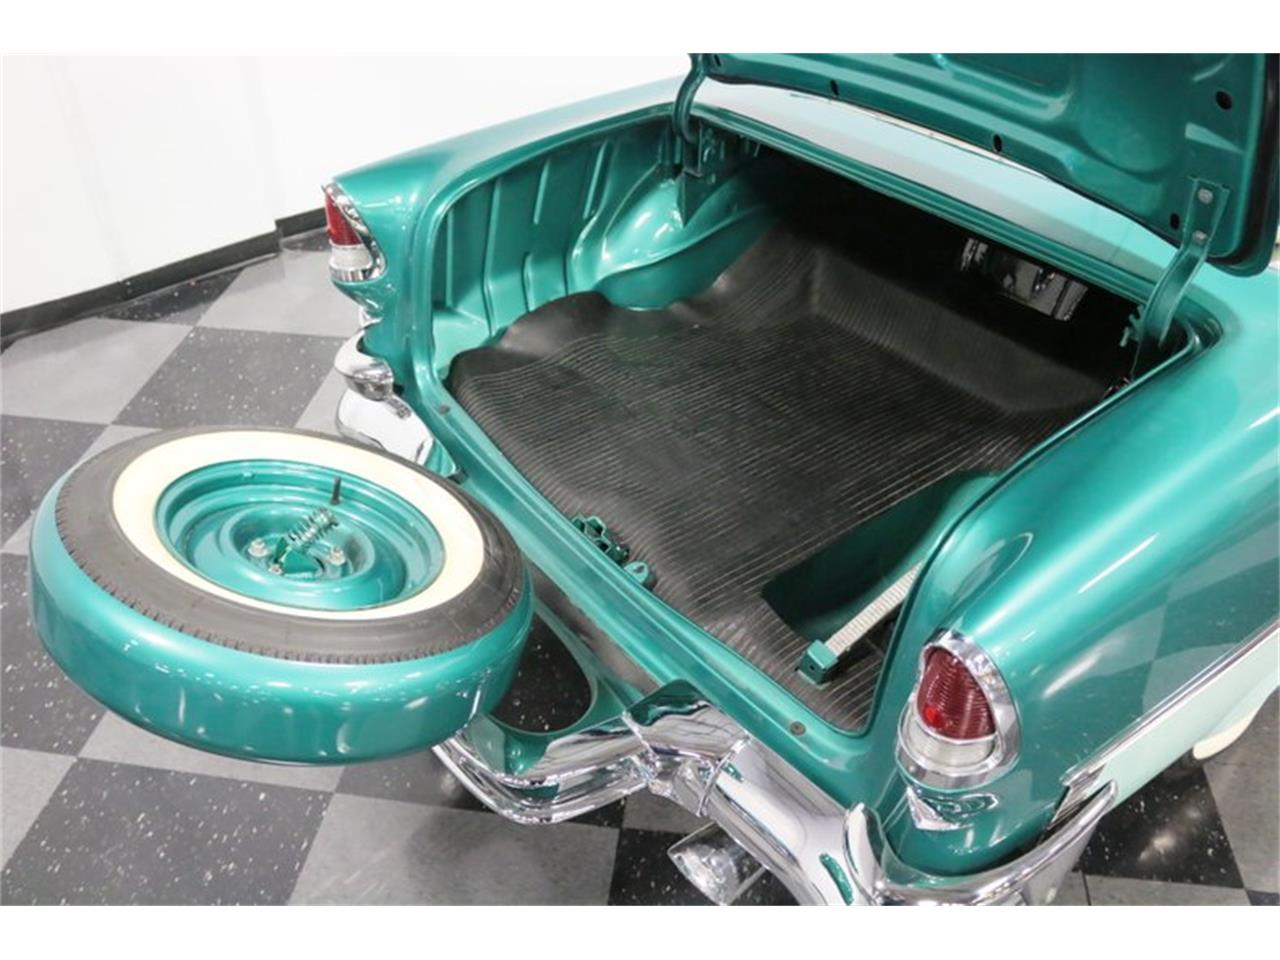 Large Picture of Classic 1955 Chevrolet Bel Air located in Ft Worth Texas Offered by Streetside Classics - Dallas / Fort Worth - QAW8